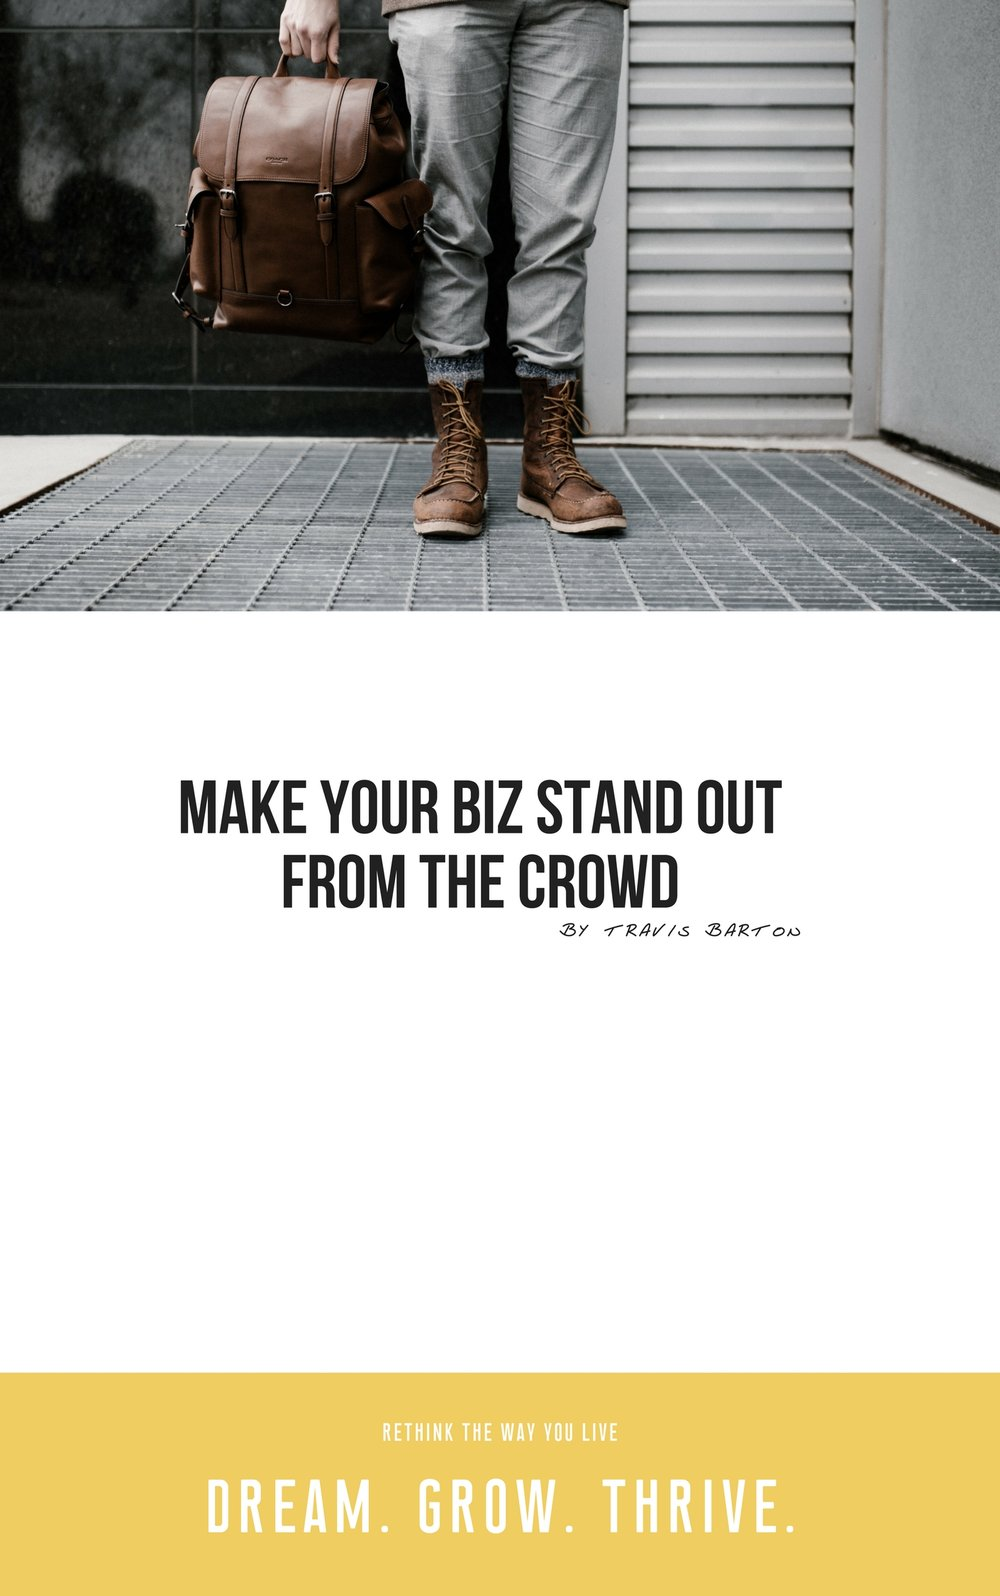 business-branding-download-stand-out.jpg